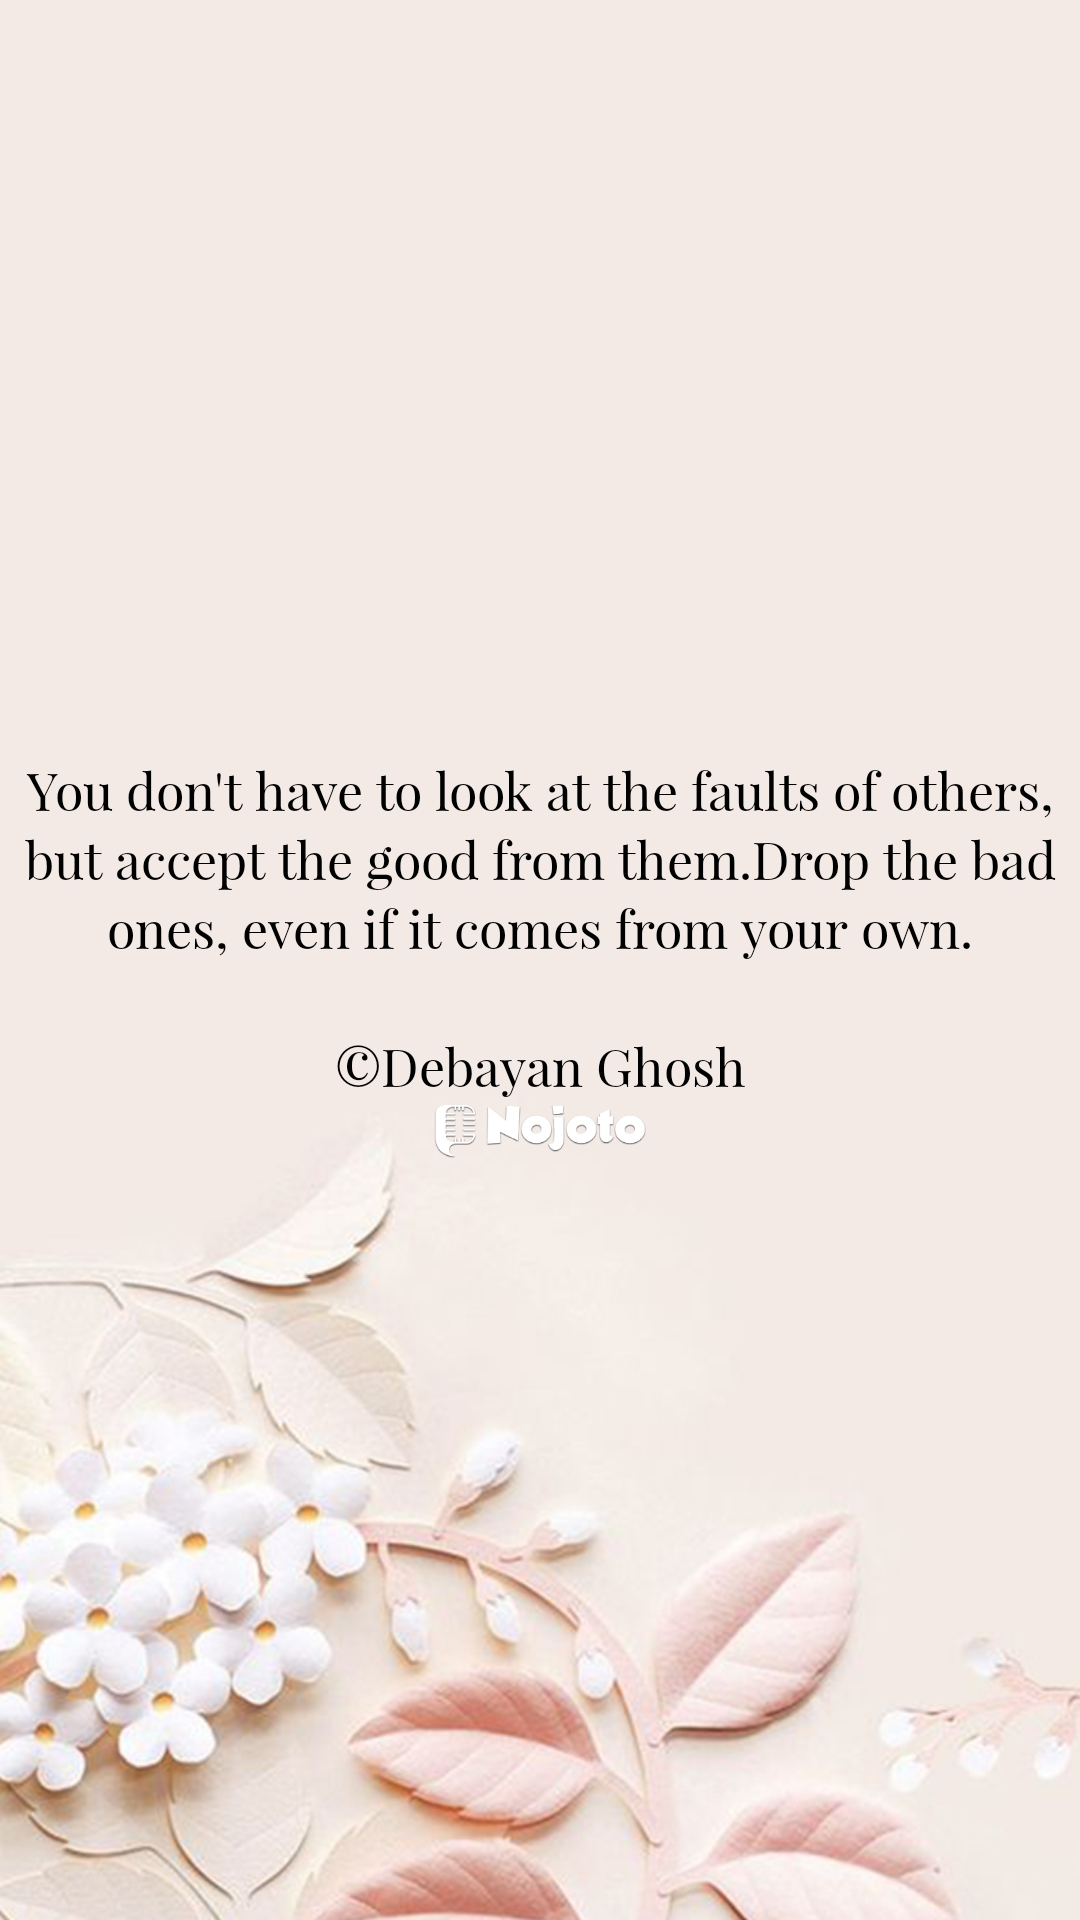 You don't have to look at the faults of others, but accept the good from them.Drop the bad ones, even if it comes from your own.  ©Debayan Ghosh